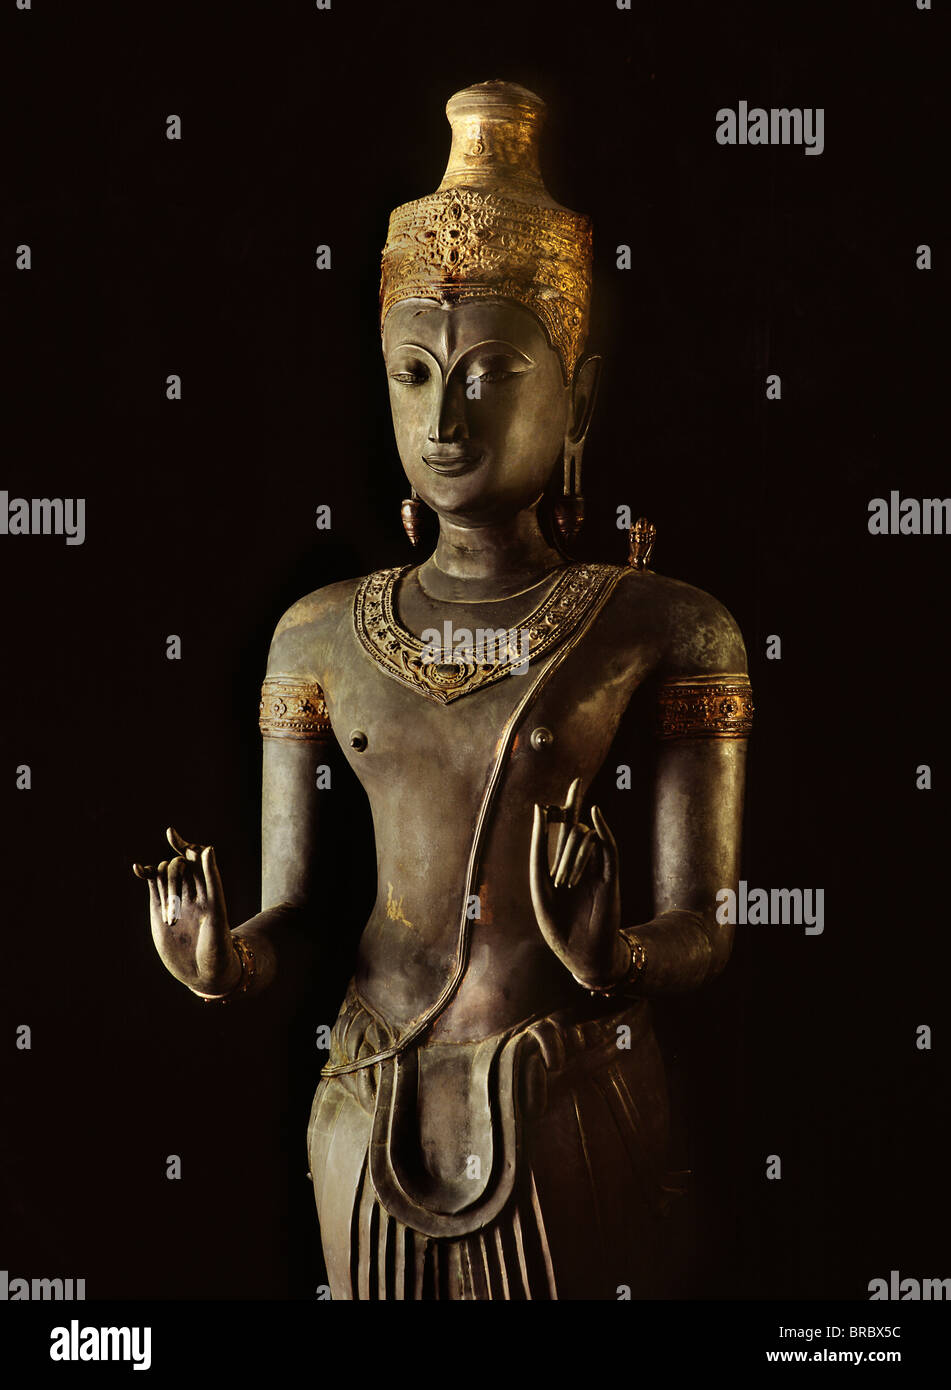 A 14th century bronze image of Shiva, now in National Museum, Bangkok, Thailand - Stock Image